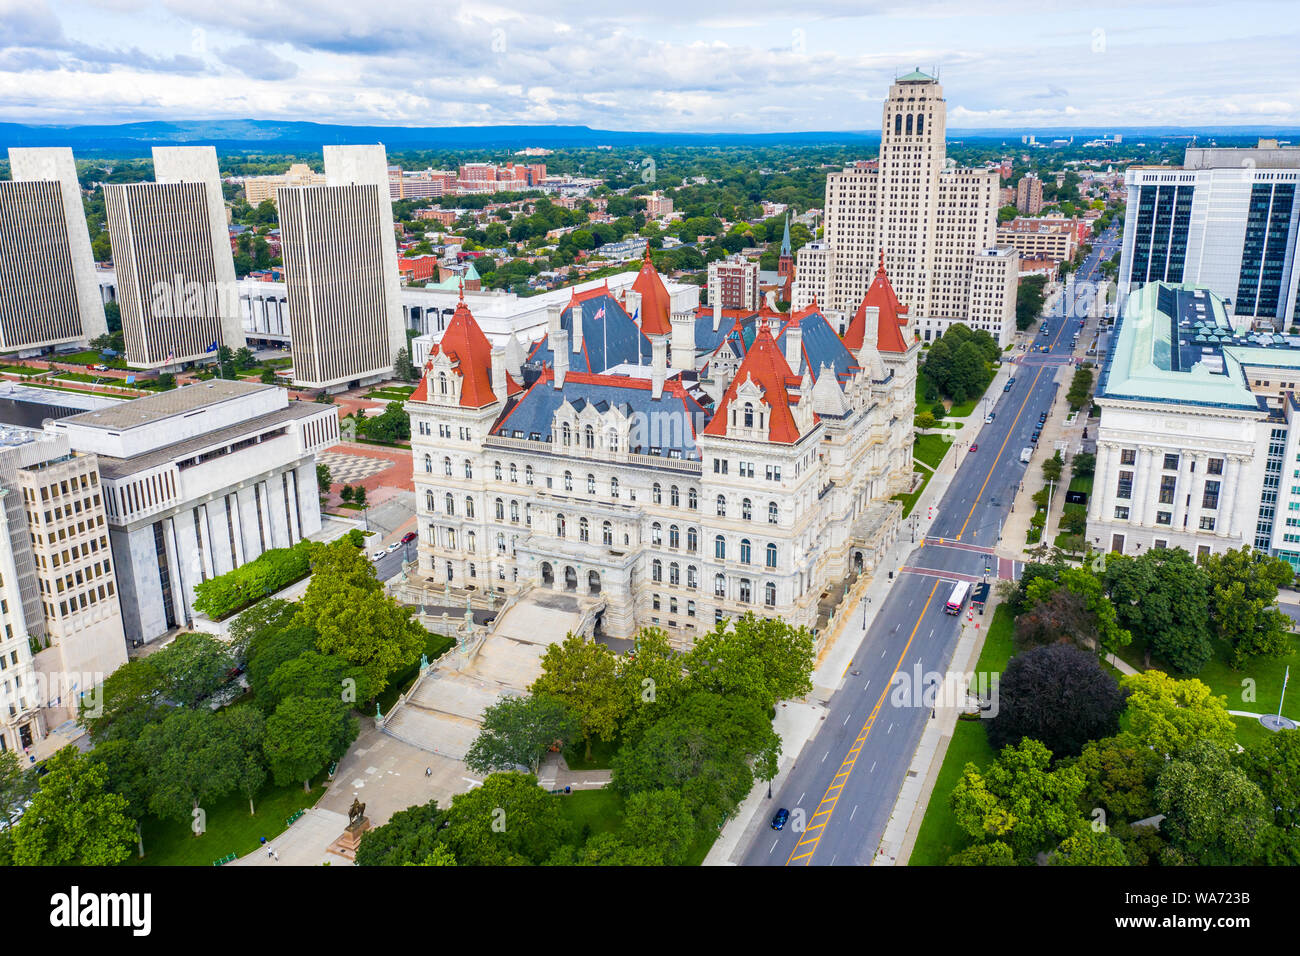 New York State Capitol, Albany, New York, USA Stockfoto